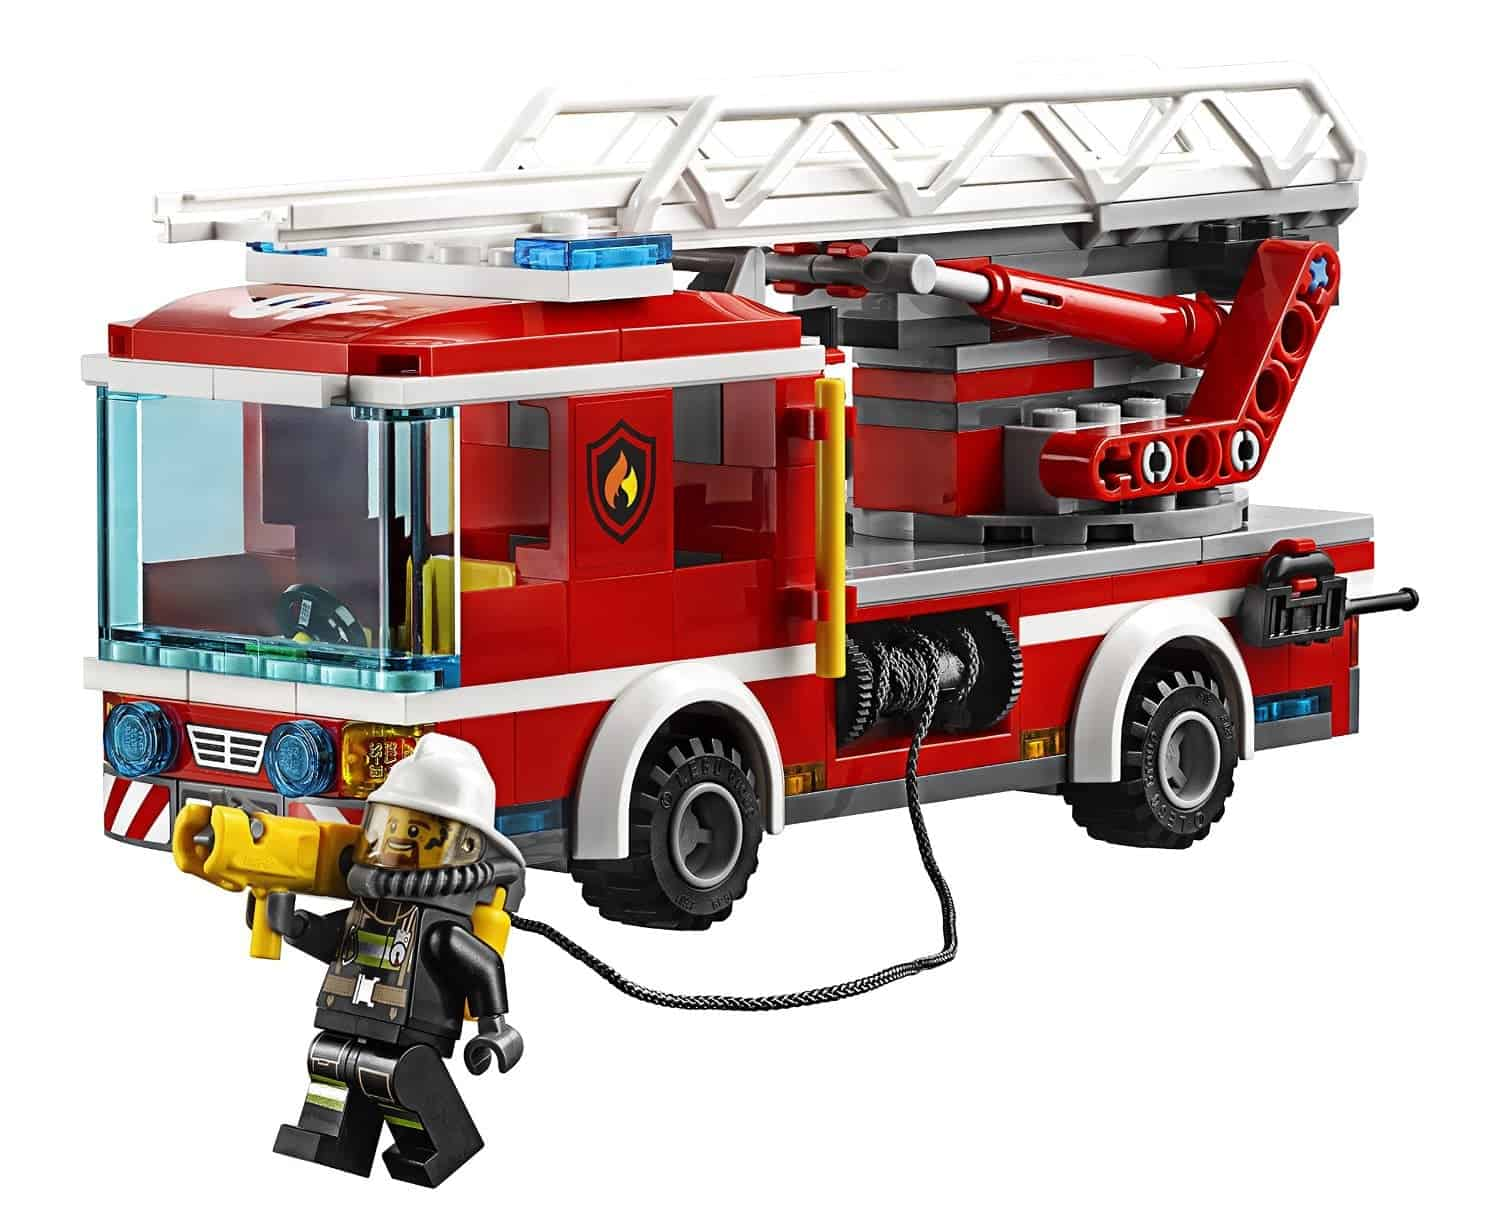 Lego Gift Ideas by Age - Toddler to Twelve Years: Fire Ladder Truck | www.thepinningmama.com